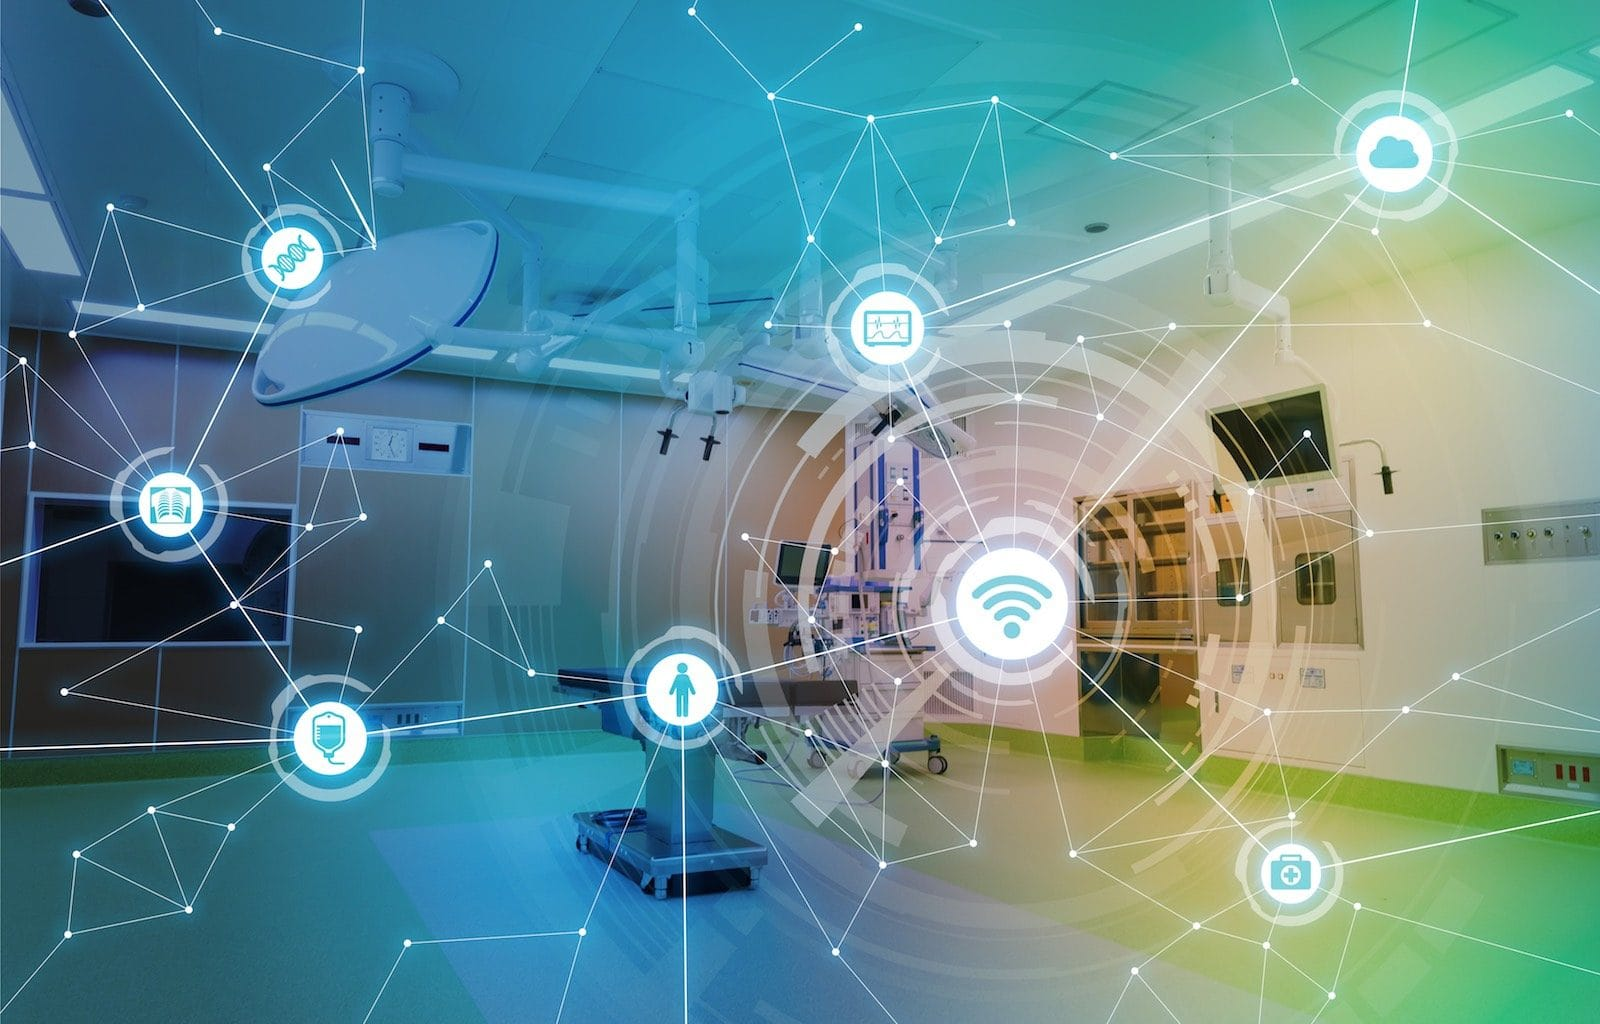 IoT in healthcare in hospitals illustration